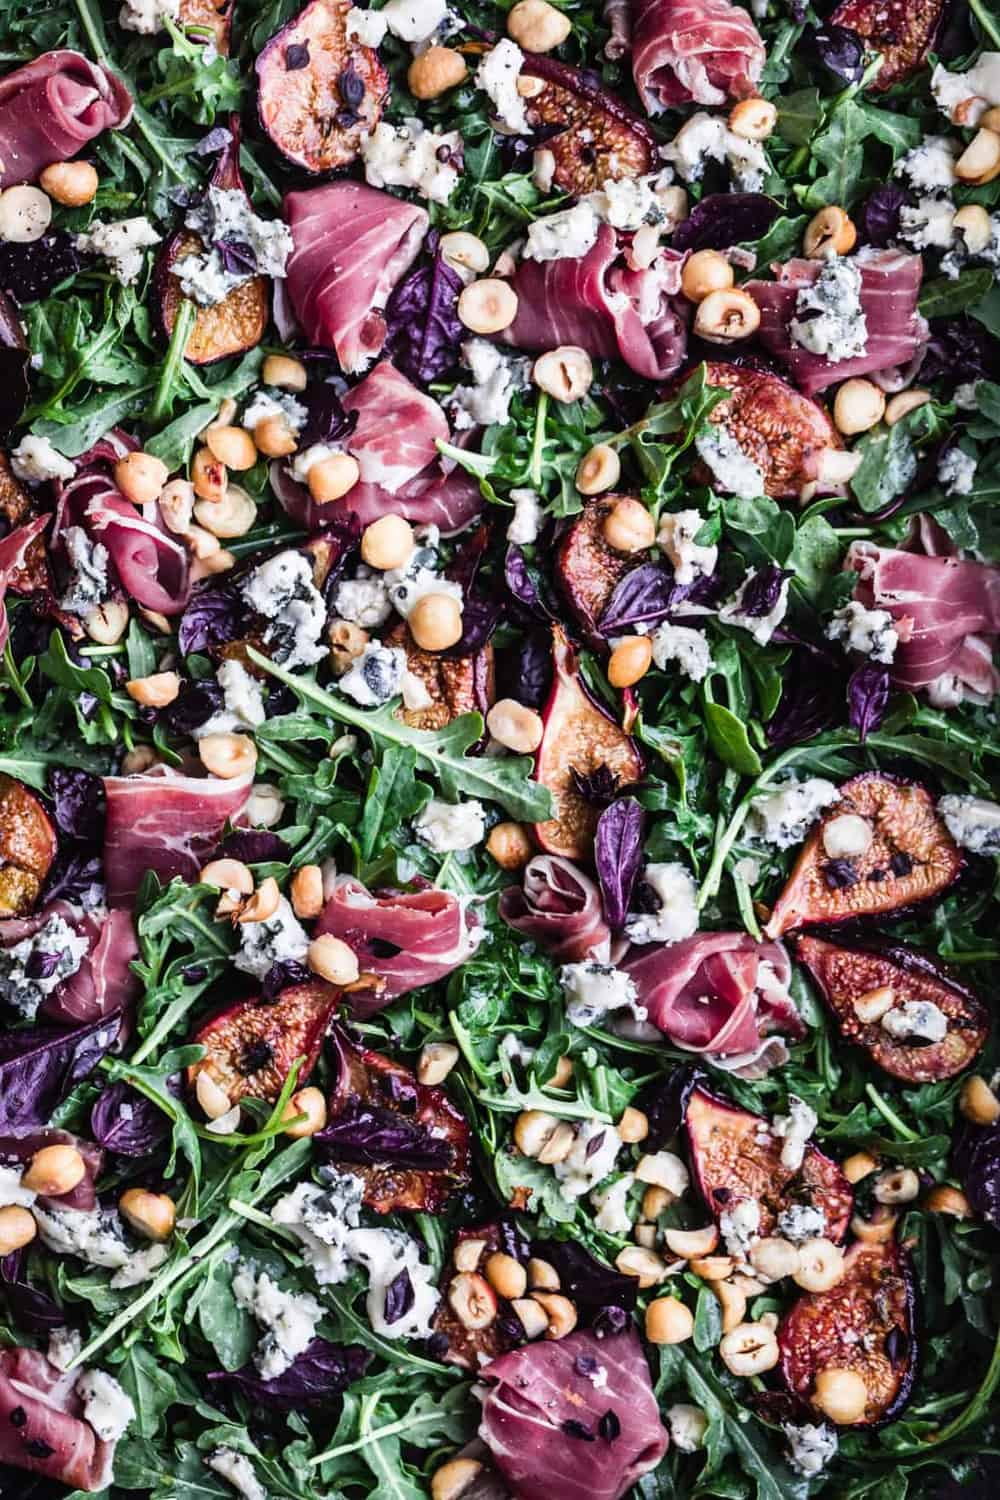 Caramelized Fig & Prosciutto Salad with hazelnuts, basil and blue cheese. Overhead shot. Up close.